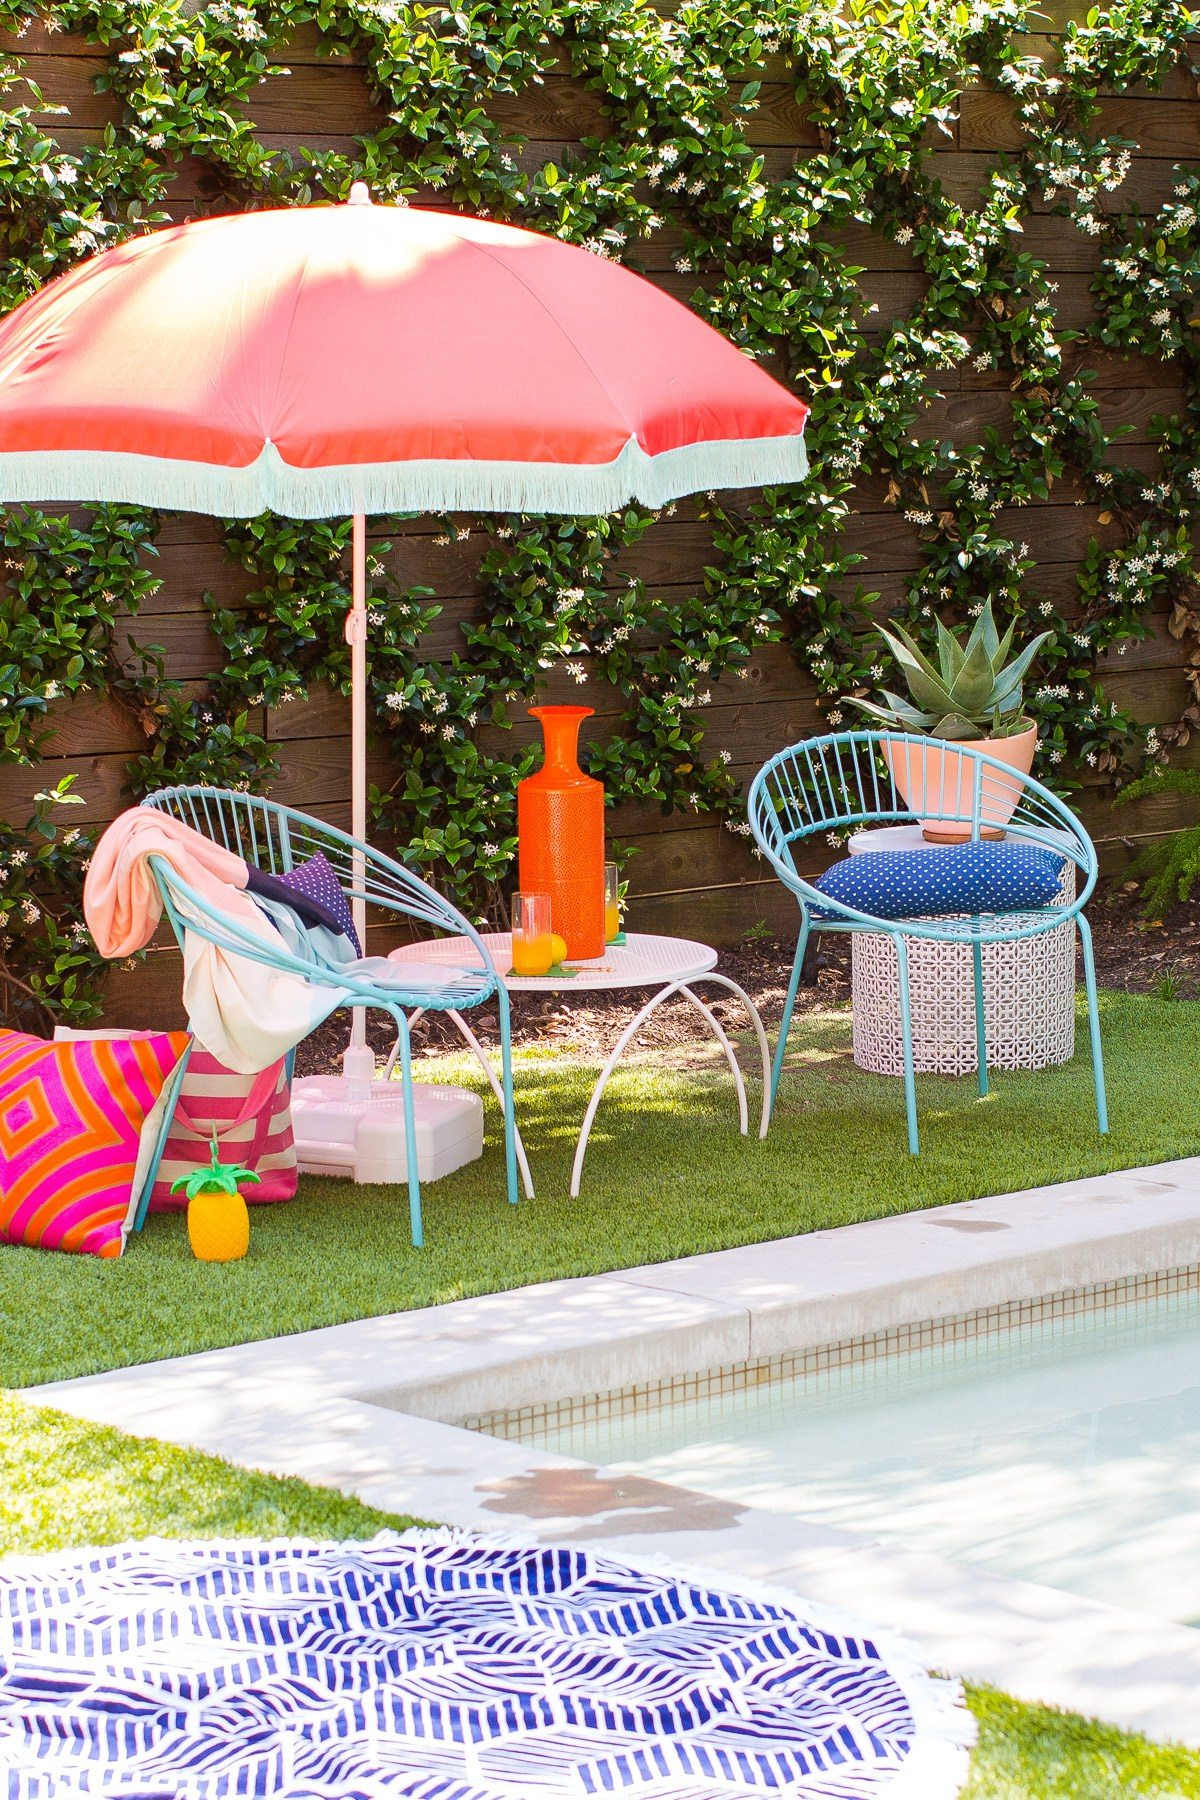 12 summer diy ideas for lazy beach days the sweetest occasion